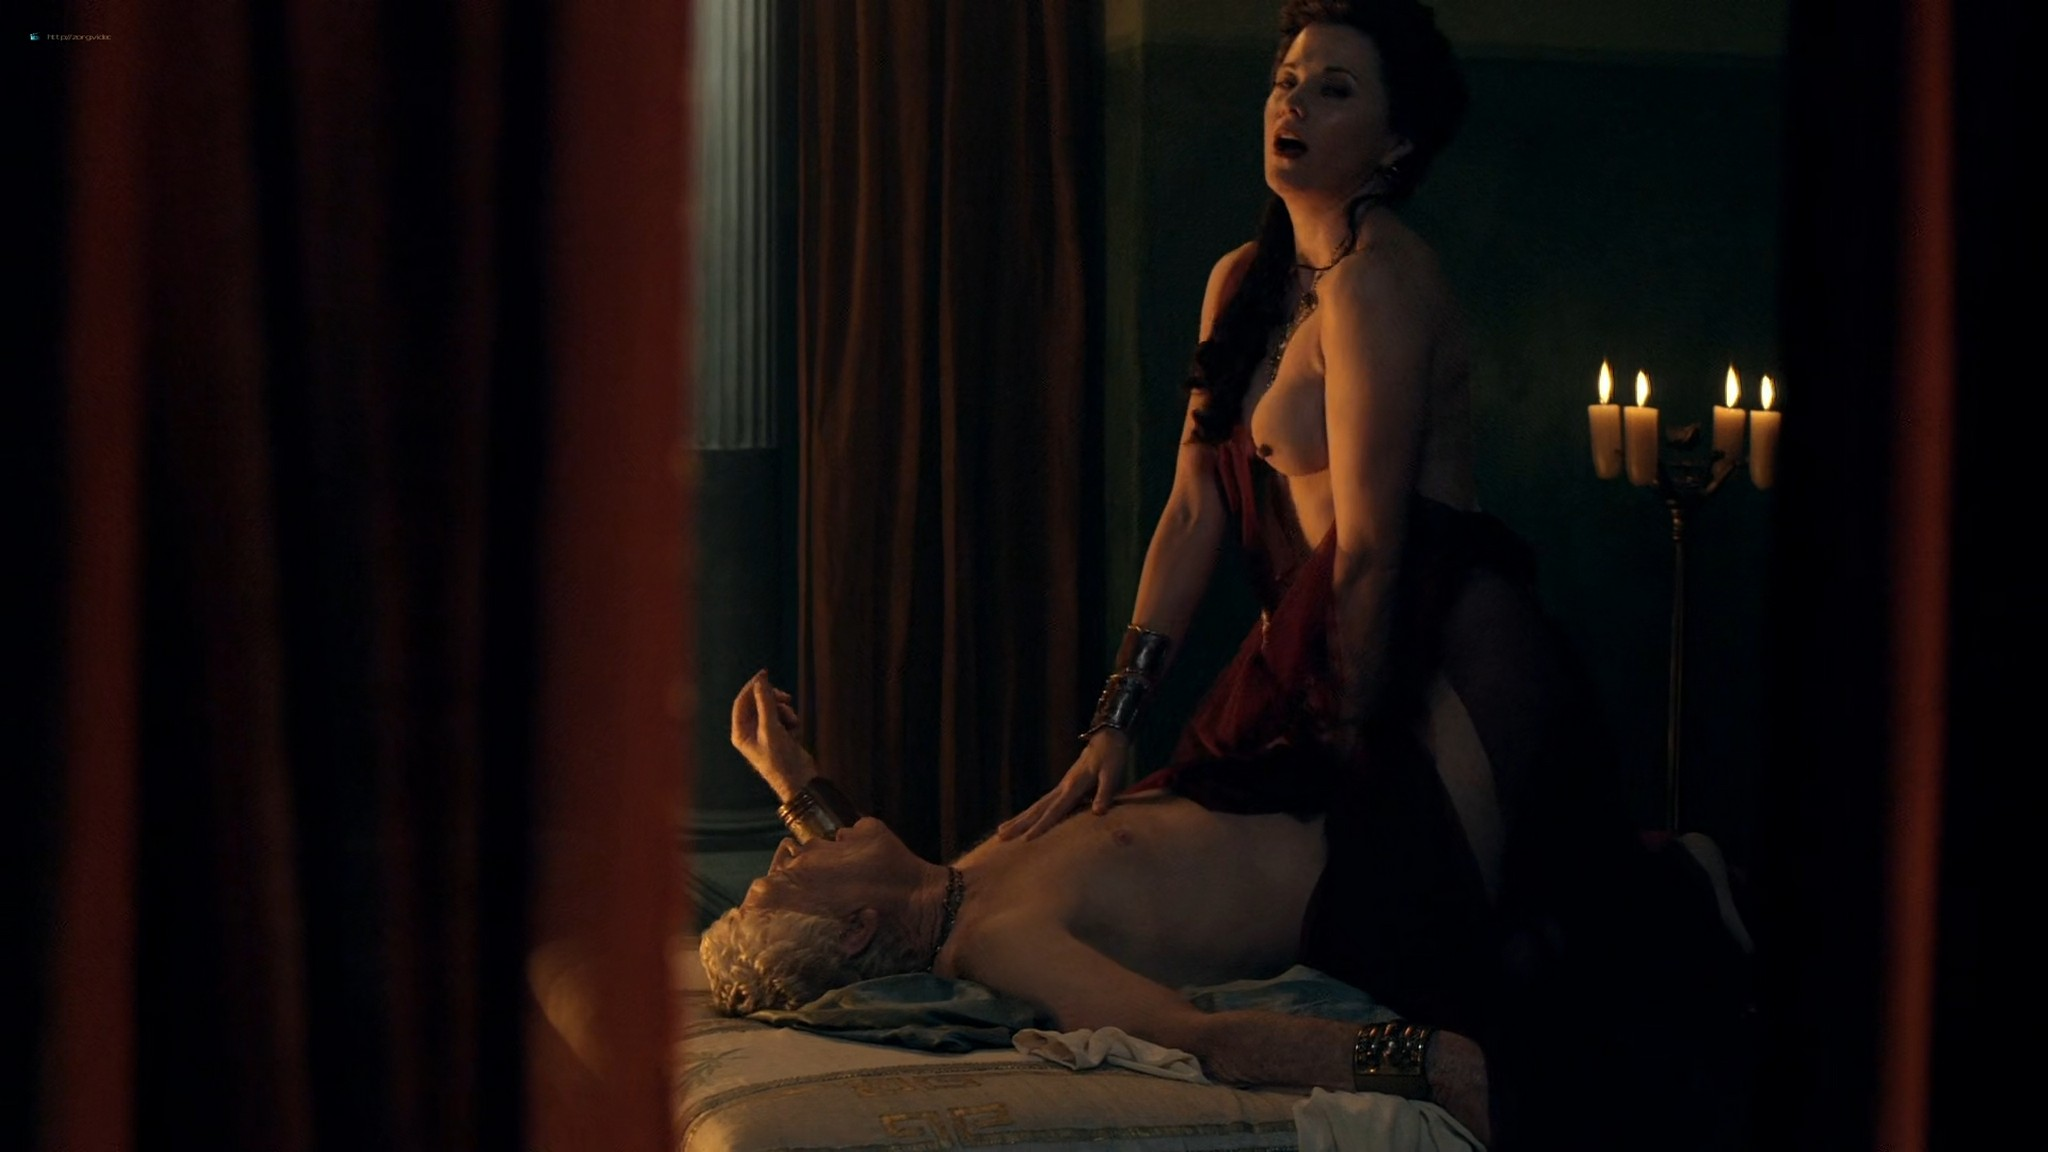 Viva Bianca nude Lucy Lawless nude sex others nude - Spartacus - Vengeance (2012) e4 1080p BluRay (2)